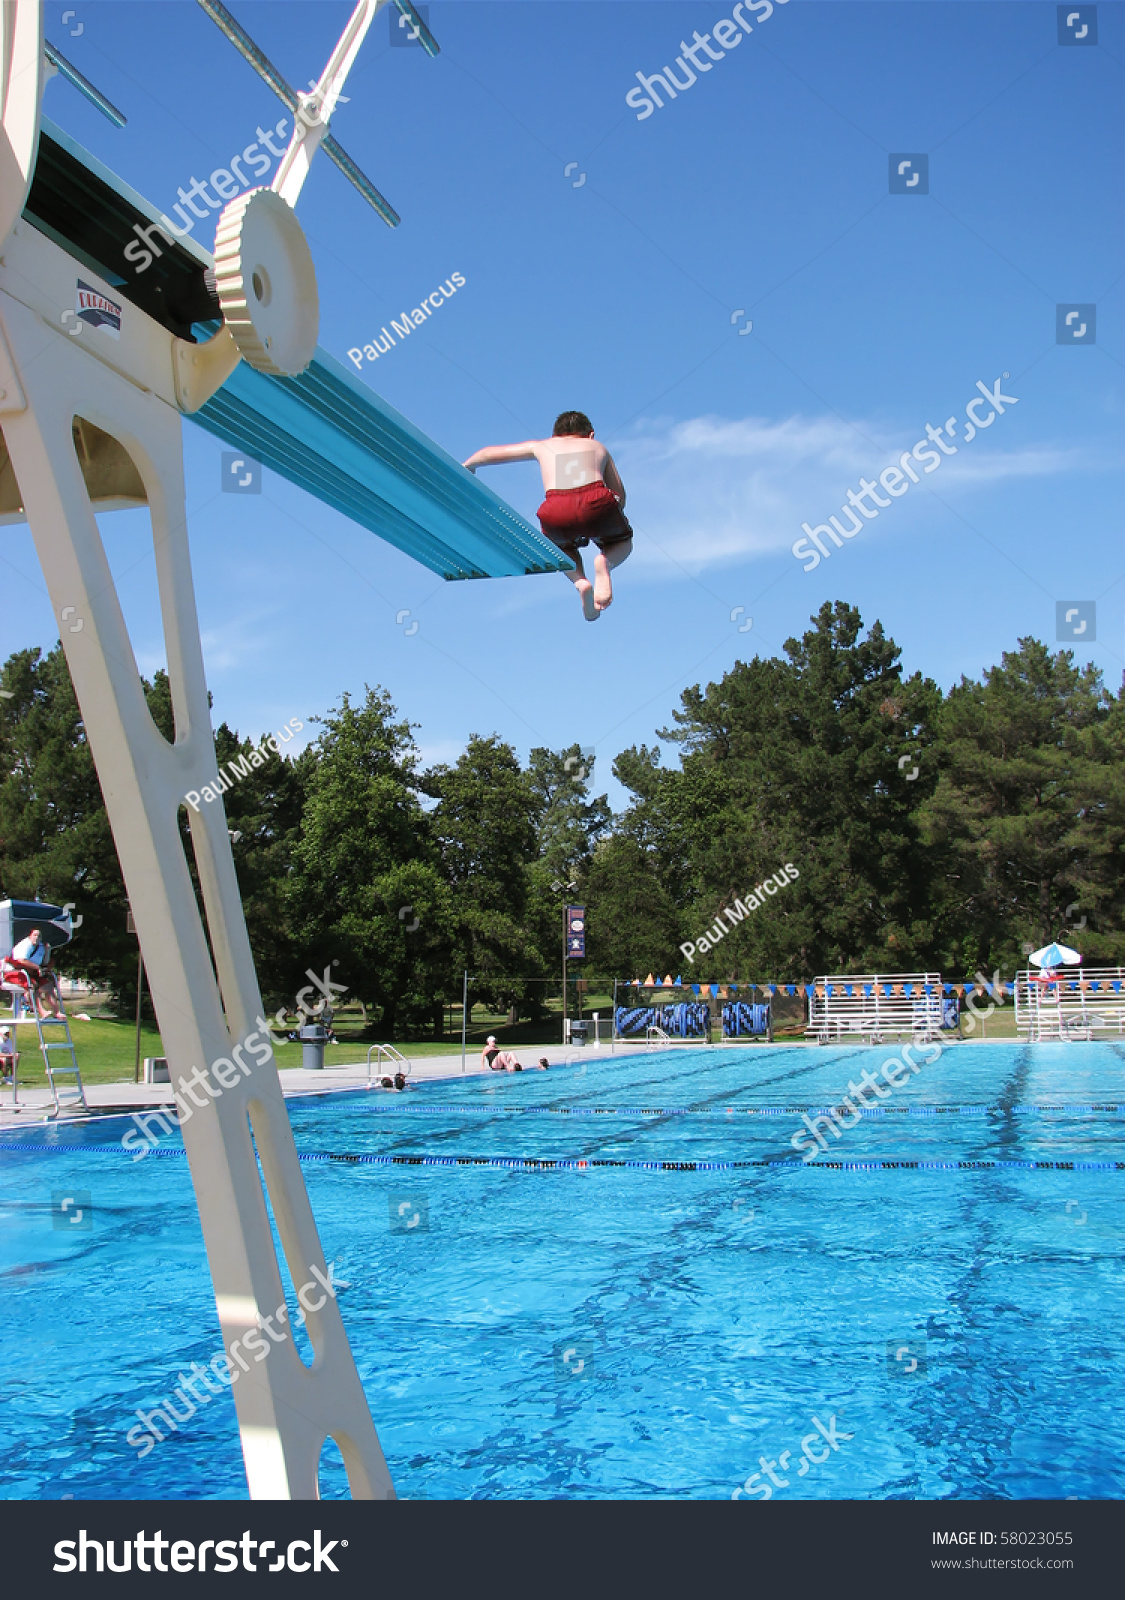 Boy Jumping Off High Diving Board Stock Photo 58023055 - Shutterstock